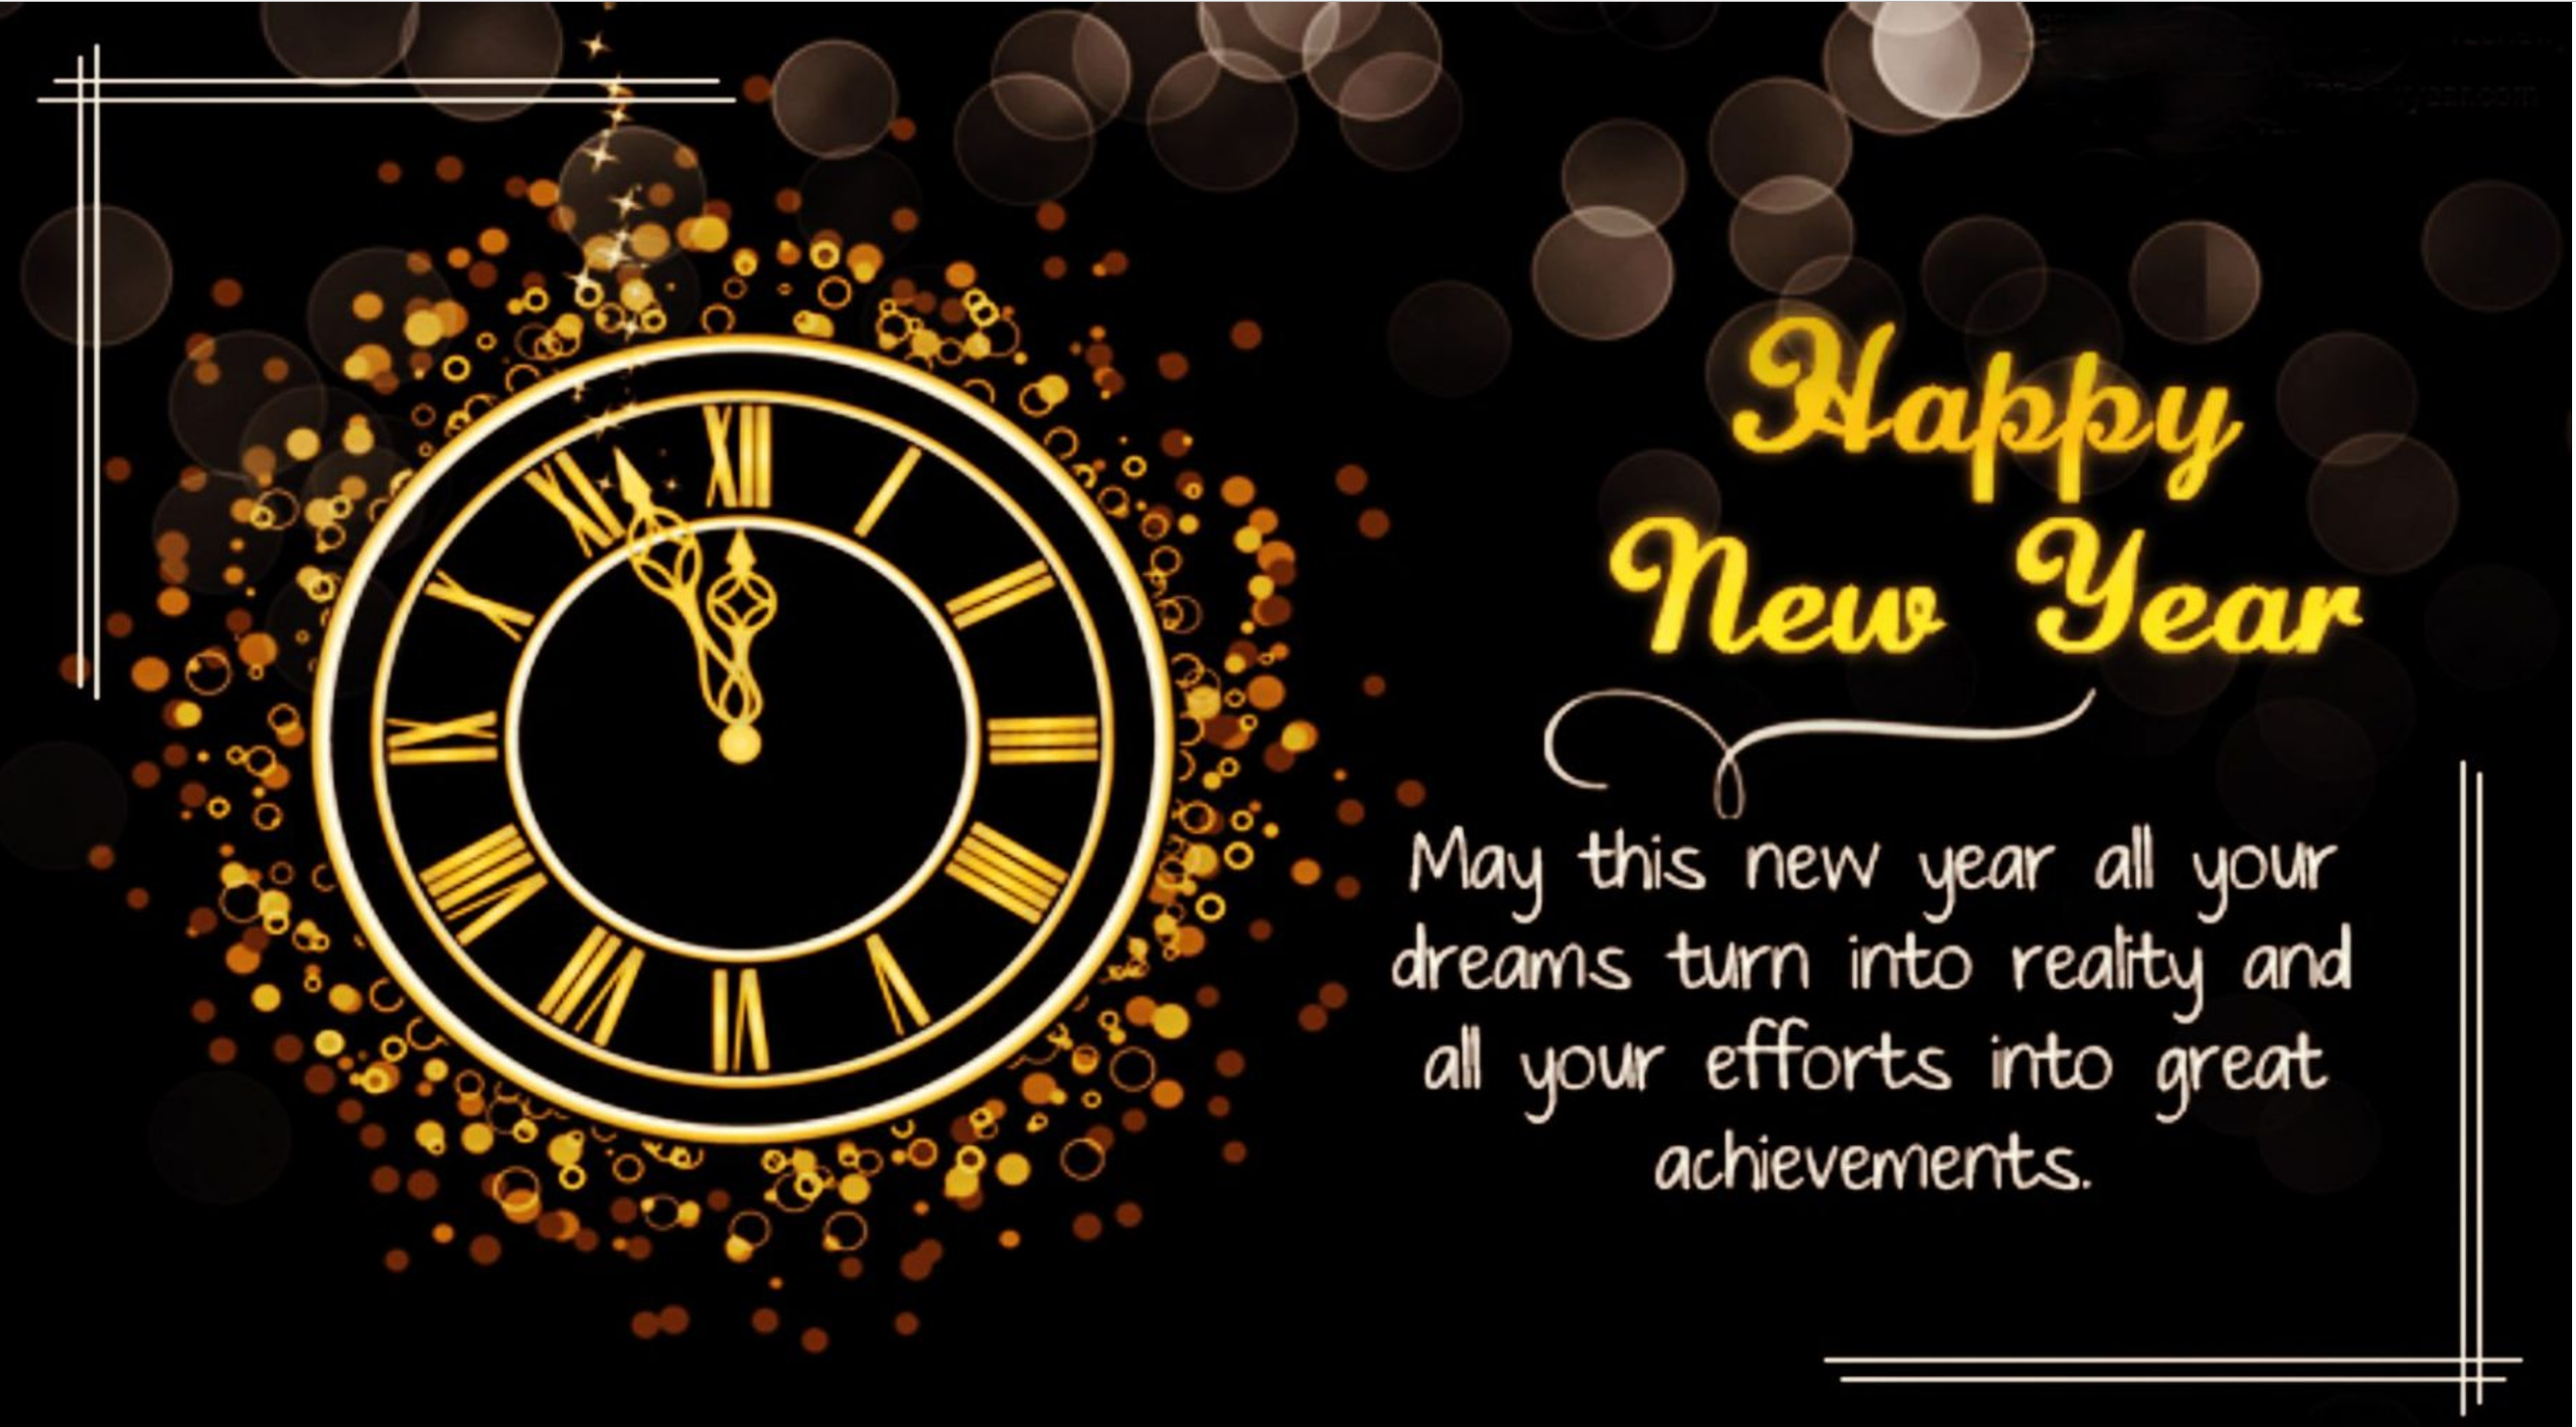 Happy New Year 2019 Wishes Wallpapers Sms Message In Hindi English